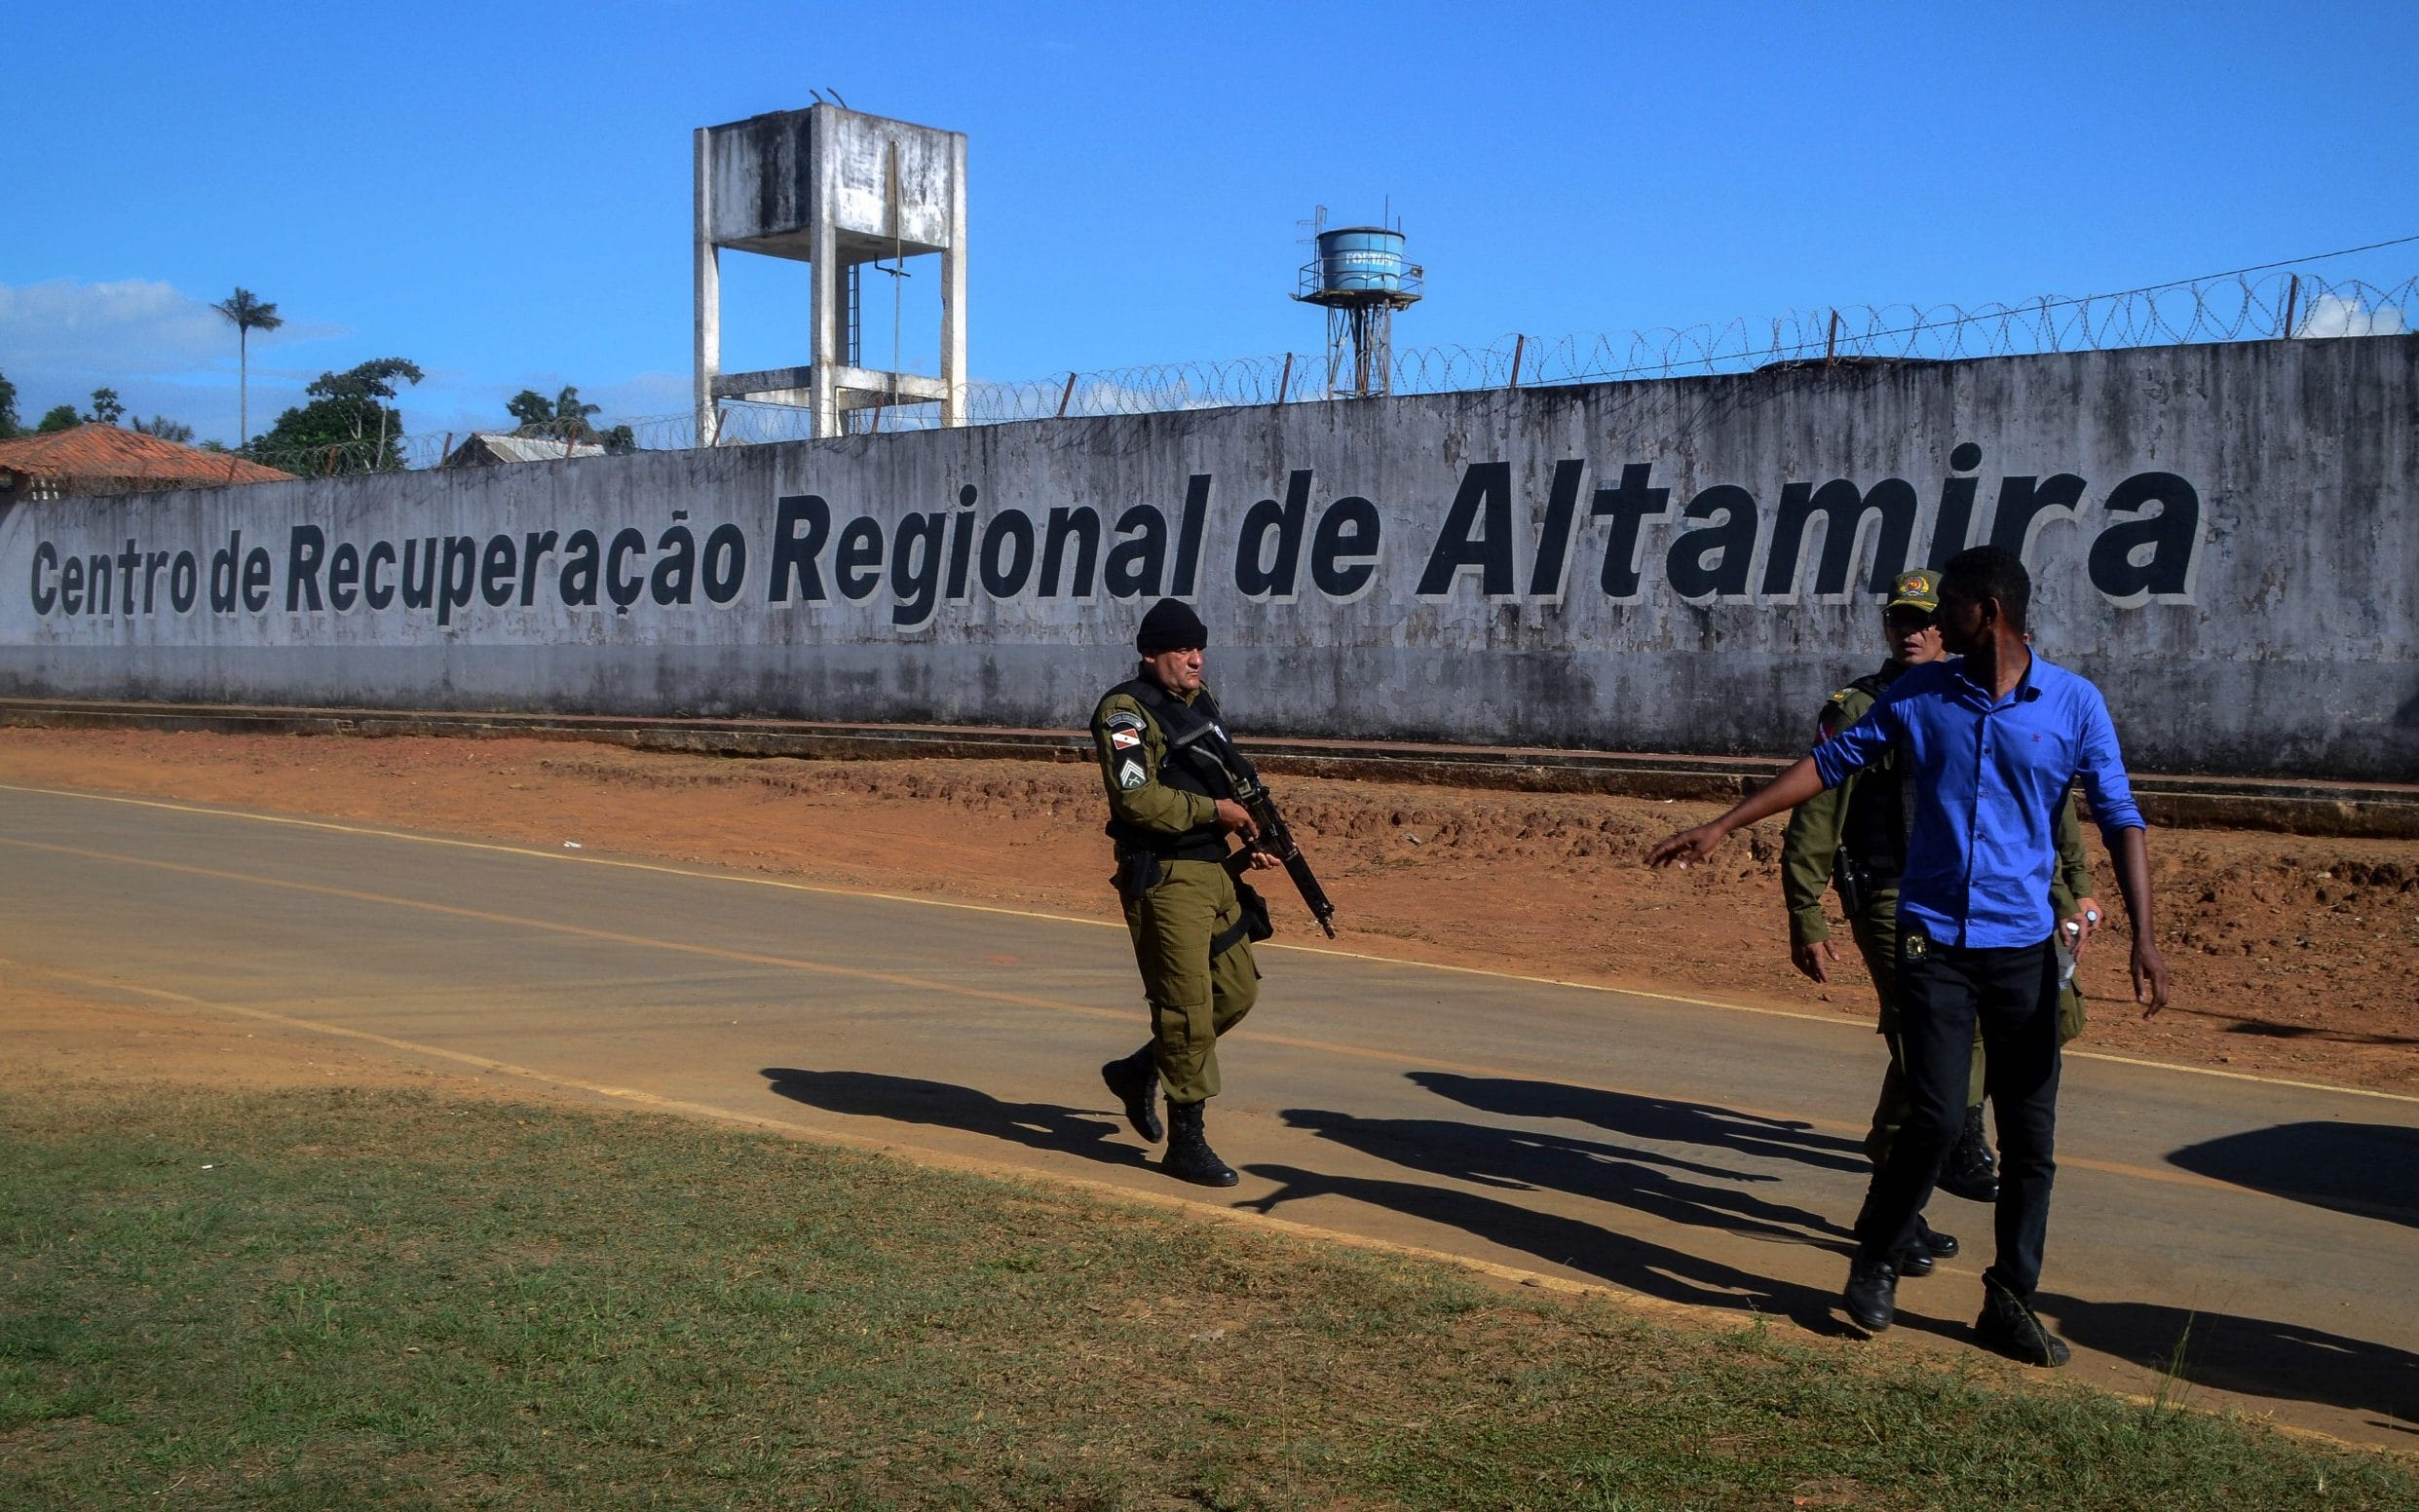 Prisoners decapitated as 57 dead in Brazil prison riot